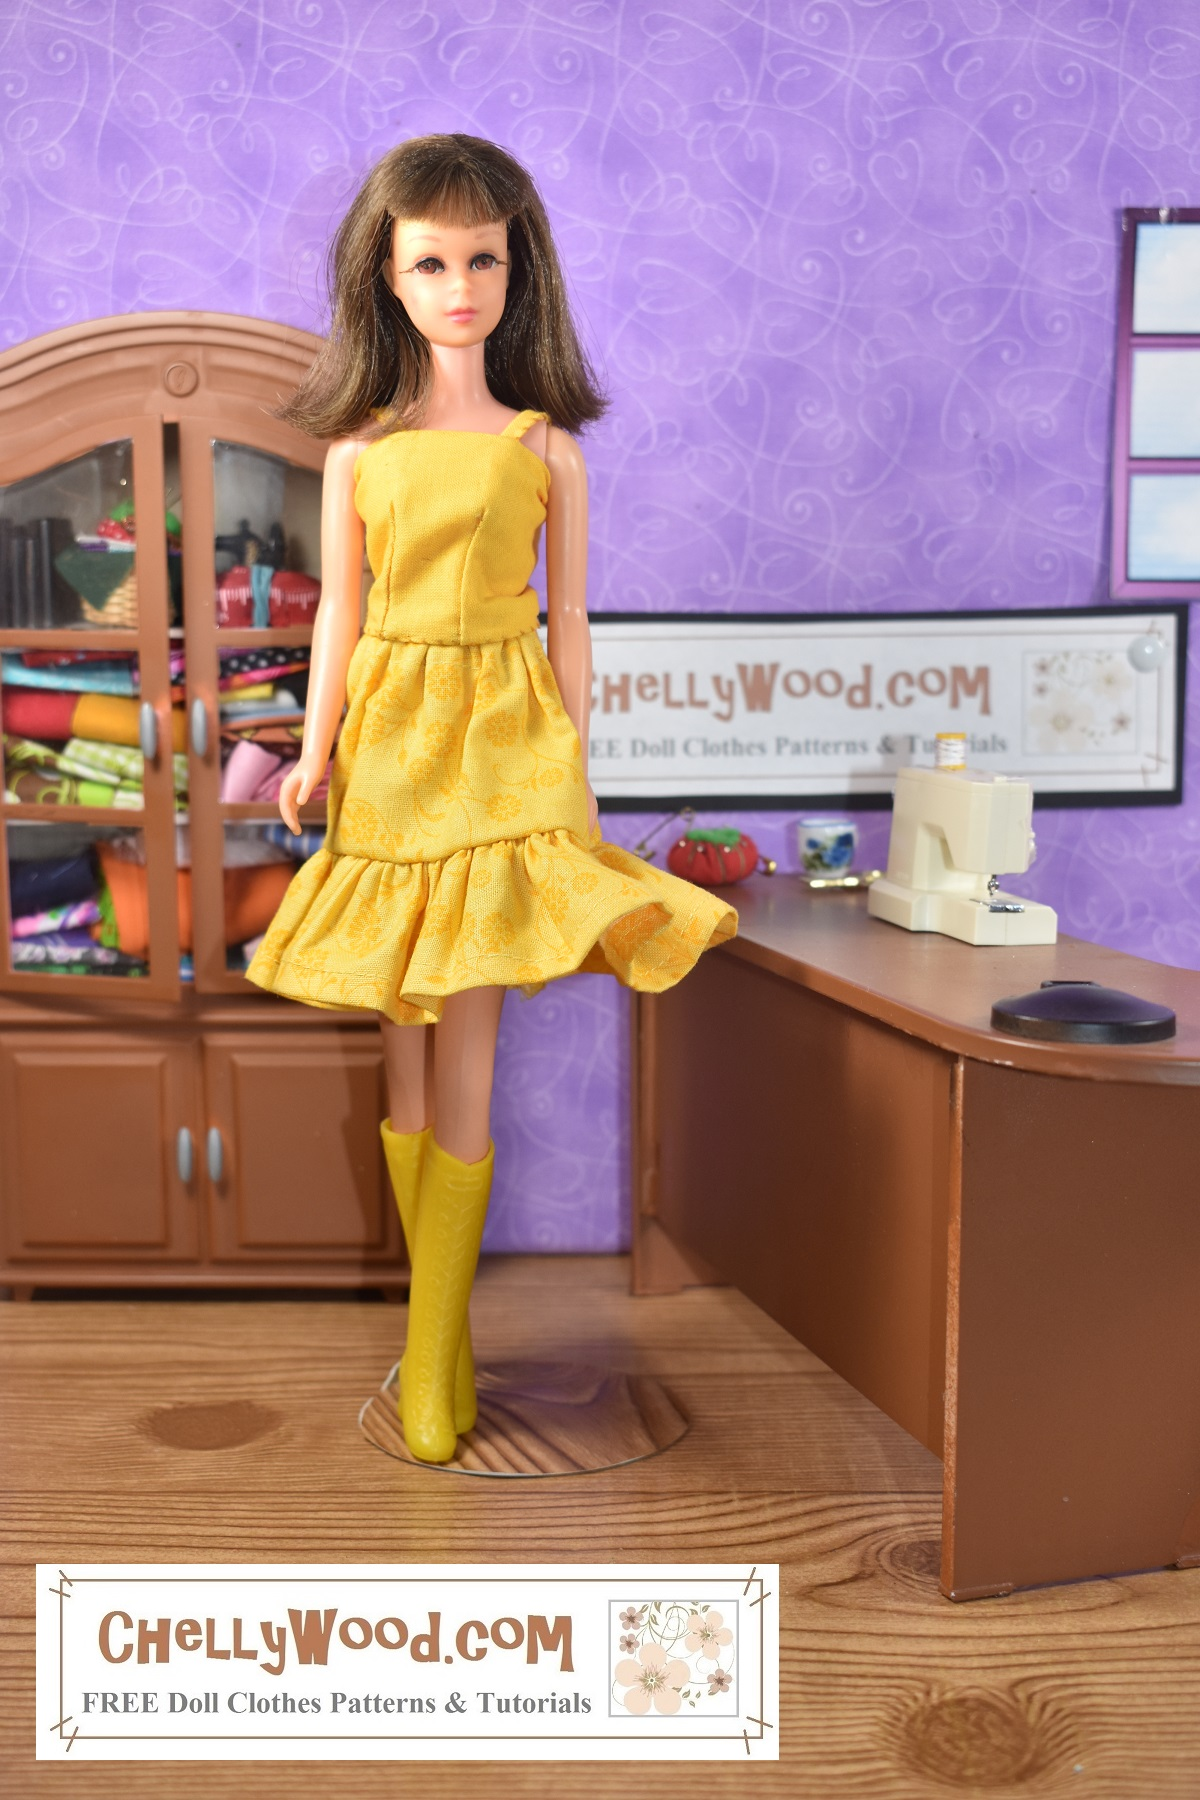 Click on the link in the caption, and it will take you to the page where the free printable PDF sewing patterns and easy-to-follow video tutorials for making these doll clothes can be found. The image shows a vintage Francie doll wearing a handmade tank top and skirt. The skirt has an elastic waist and a ruffle. The doll also wears matching butter-yellow go-go boots from the early 1970's. The doll models this lovely butter yellow doll clothes outfit in a sewing room. Behind her is a cabinet filled with fabric. At her right hand is a tiny sewing machine on a desk with a pair of scissors and a tiny tomato-shaped pin cushion. The overlay tells where you can download the free printable sewing patterns and watch the tutorial videos for making these doll clothes: ChellyWood.com